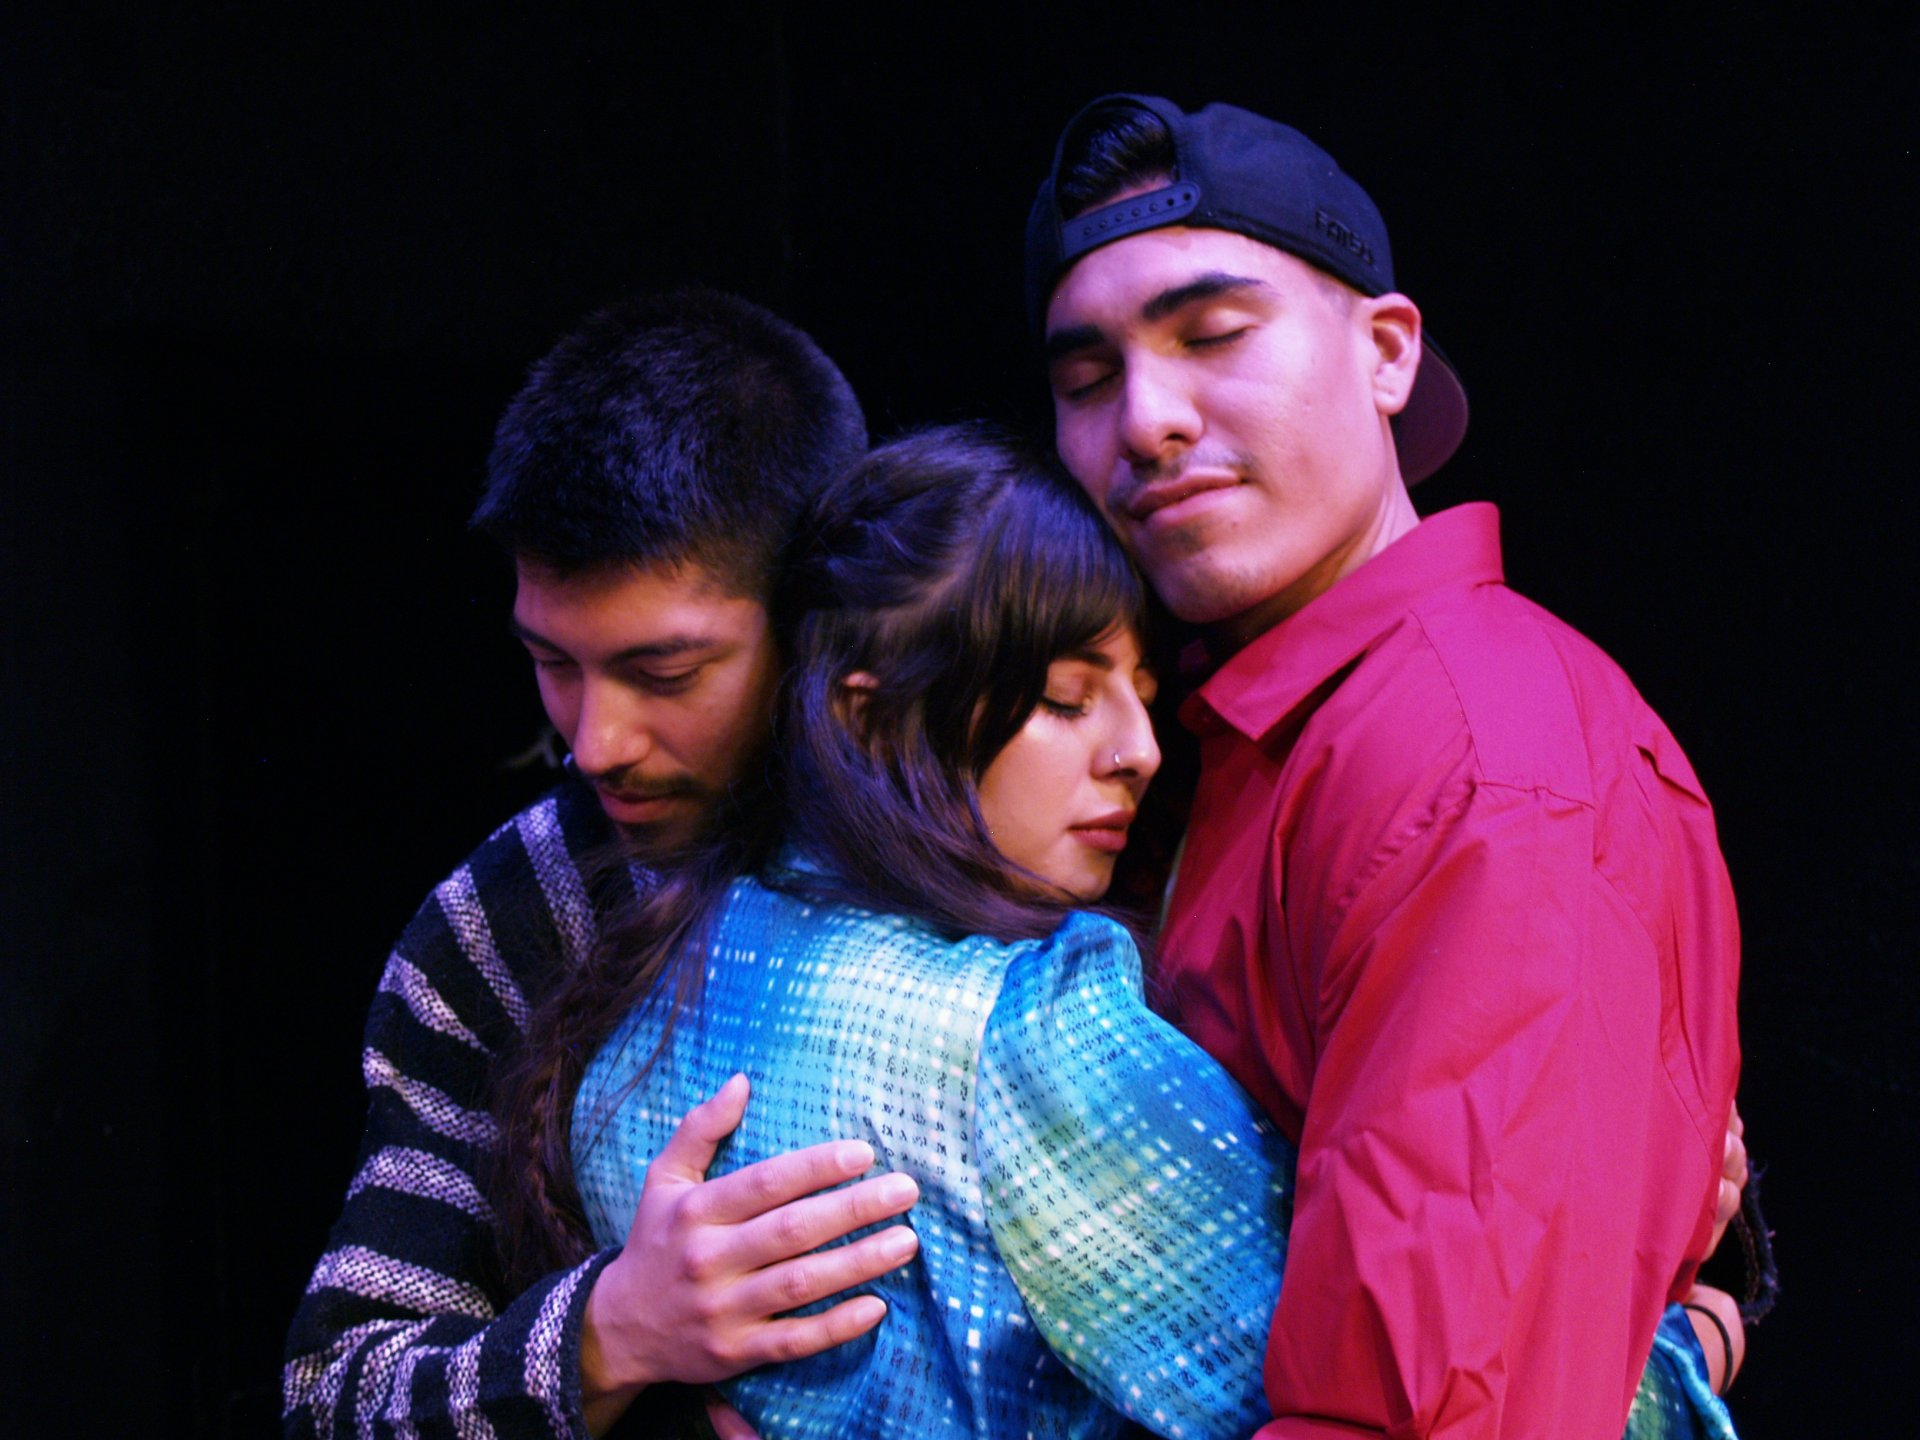 Alejandro Torres as Francisco, Wendy Carranza as Ximena and Victor Parra as Mateo embrace during the final rehearsal of